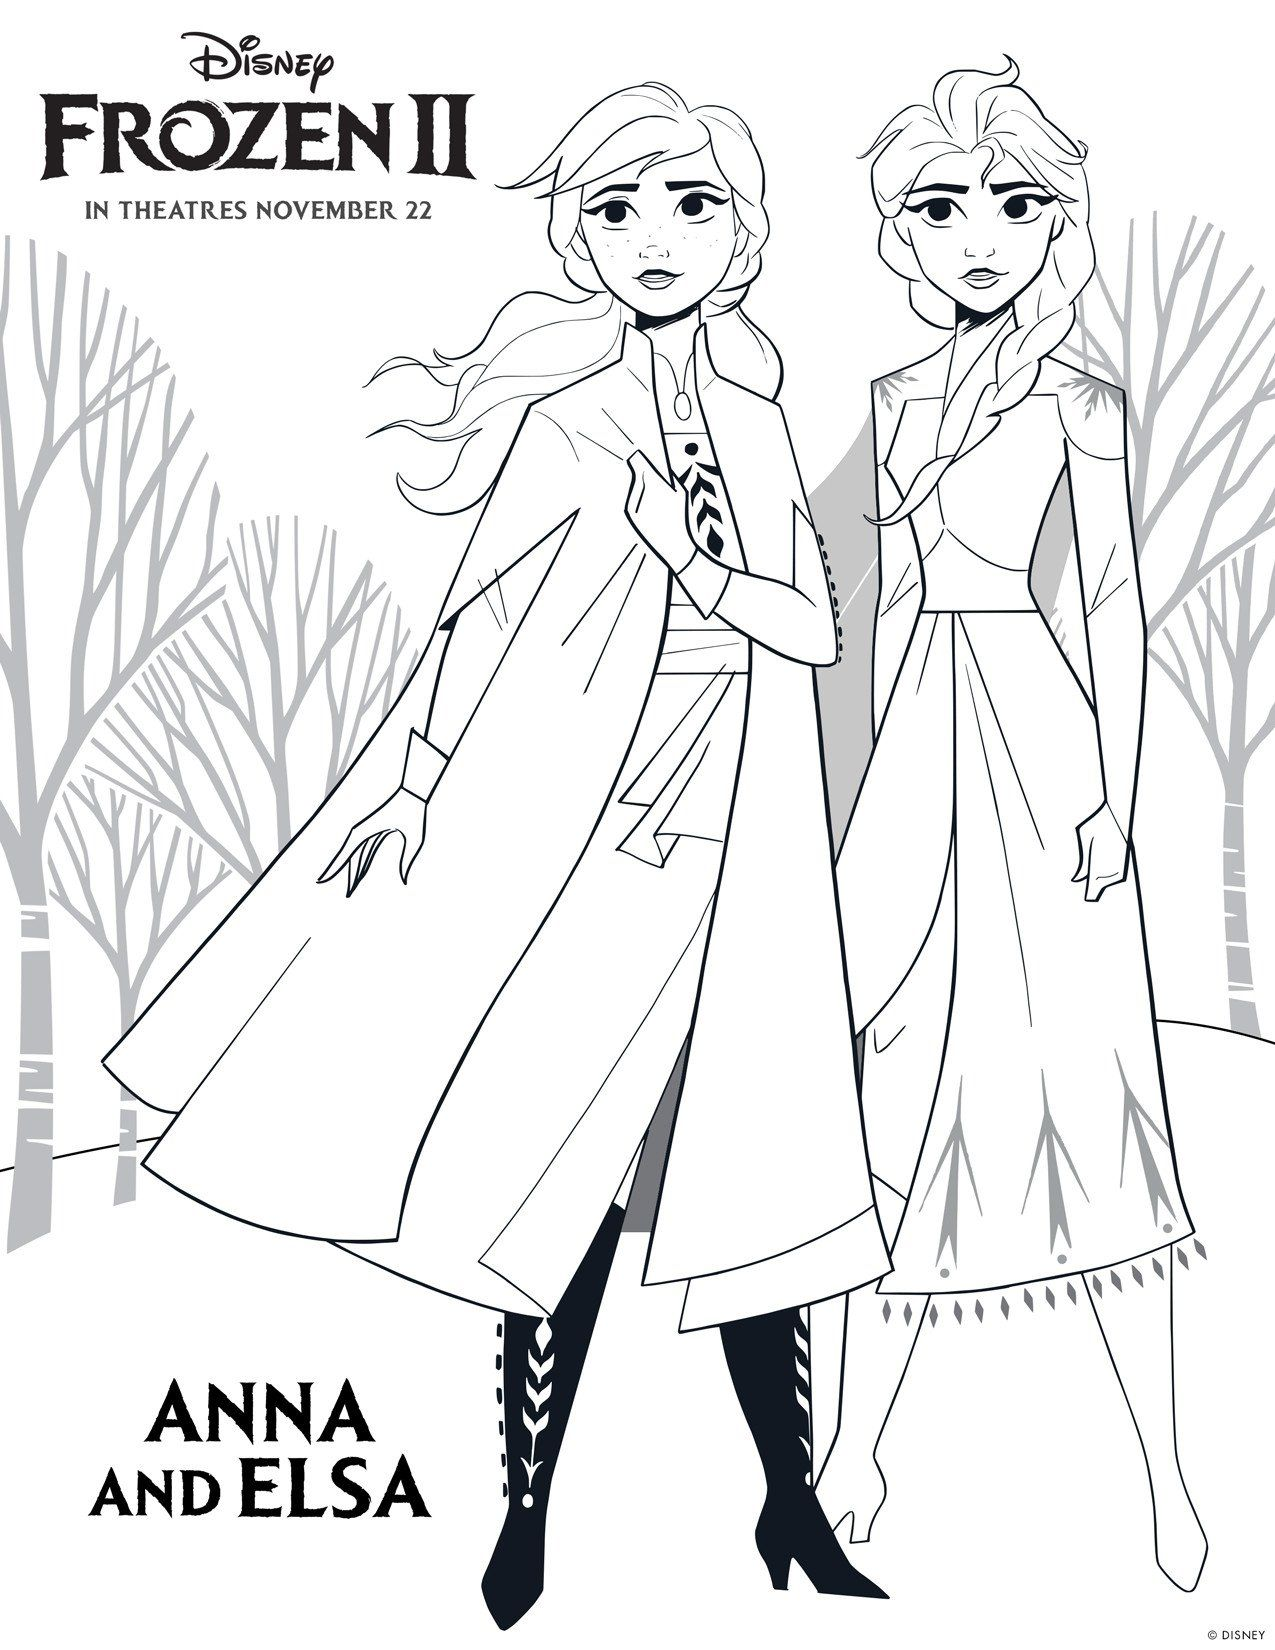 Frozen Printable Coloring Pages Disney S Frozen 2 Printable Color Sheets High Disney Princess Coloring Pages Free Disney Coloring Pages Princess Coloring Pages